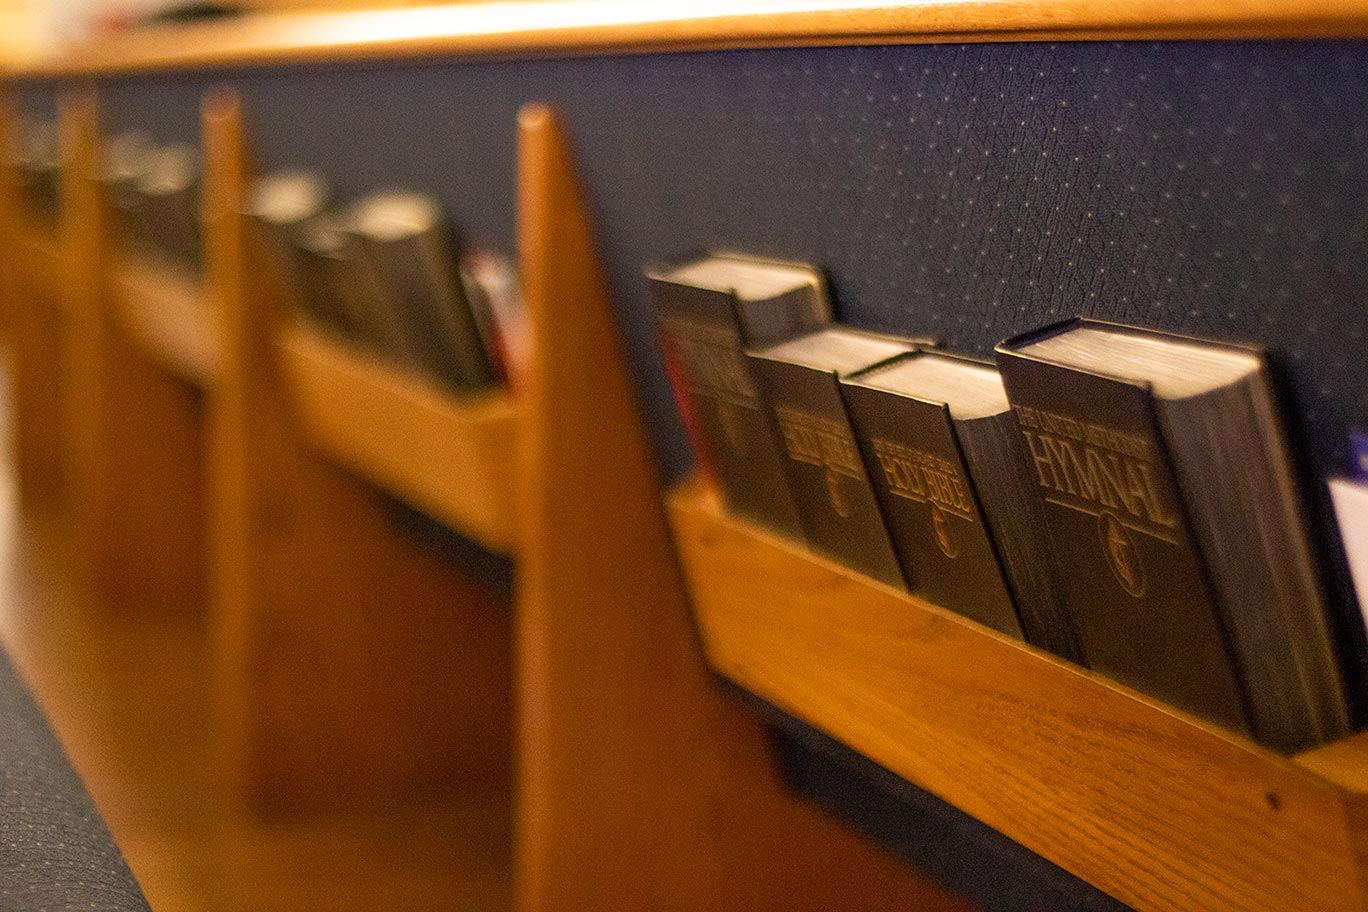 Bibles in the back of a pew.